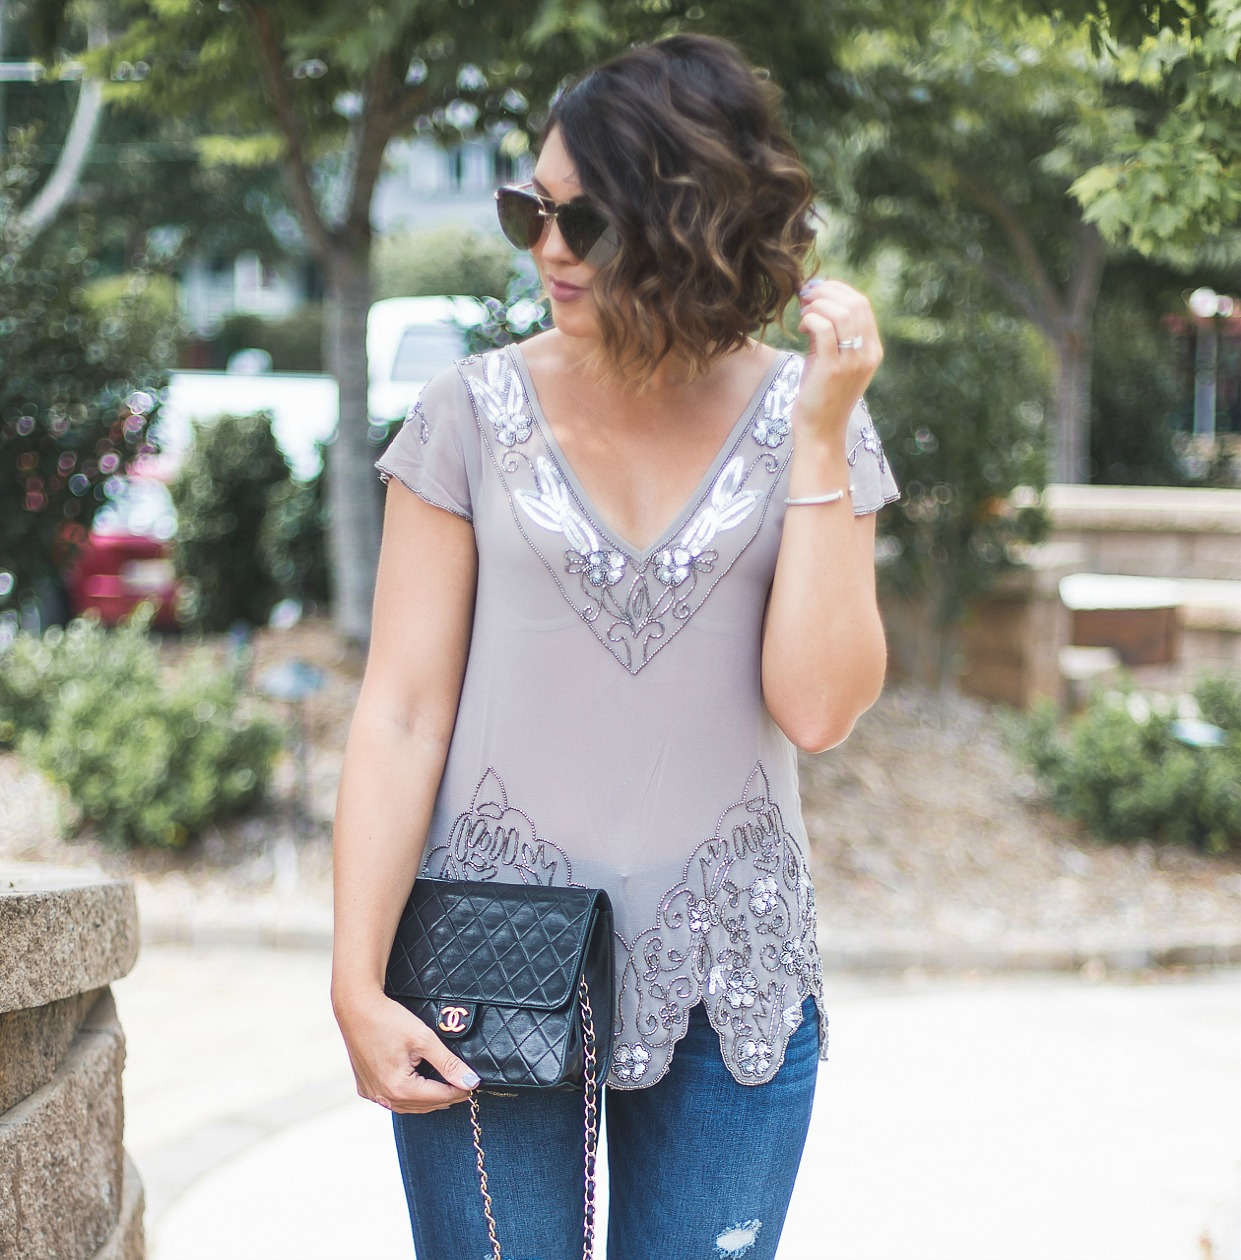 bke boutique embellished top, quay aviators, francescas fringed denim